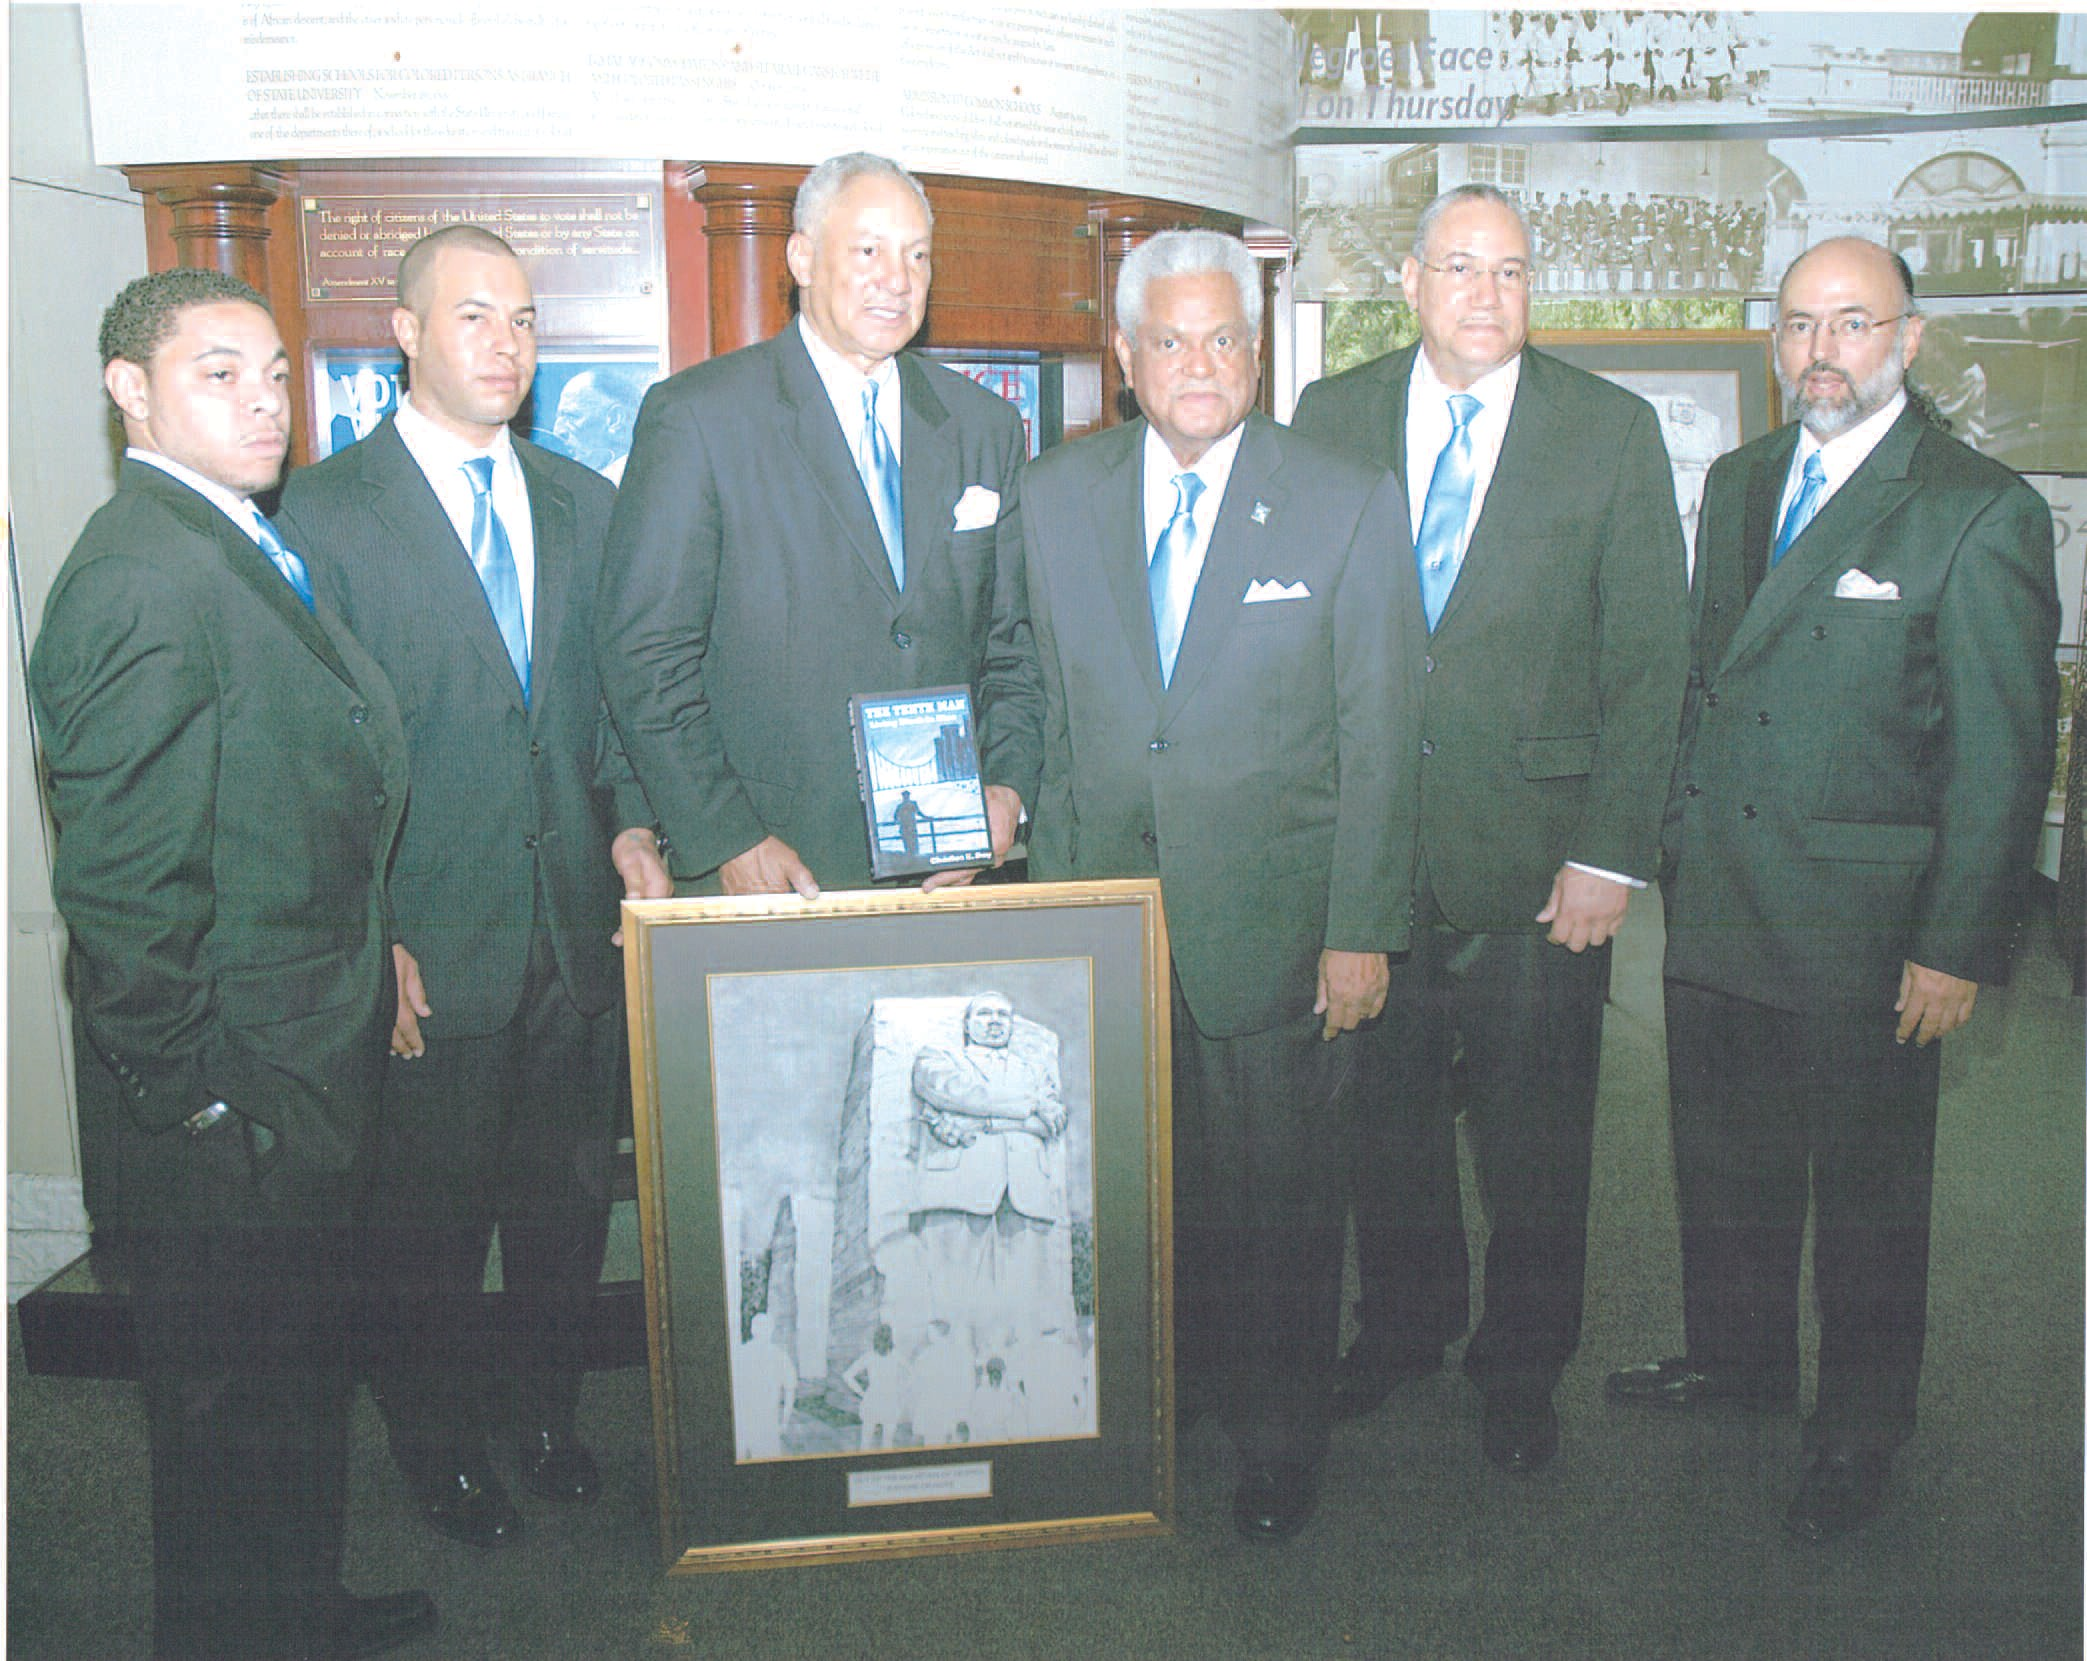 Charles Day (third from left), son of William Day, along with brother Robert (second from right) and other family members present artwork to Billy Jamison, Chairman of the Museums Board of Directors